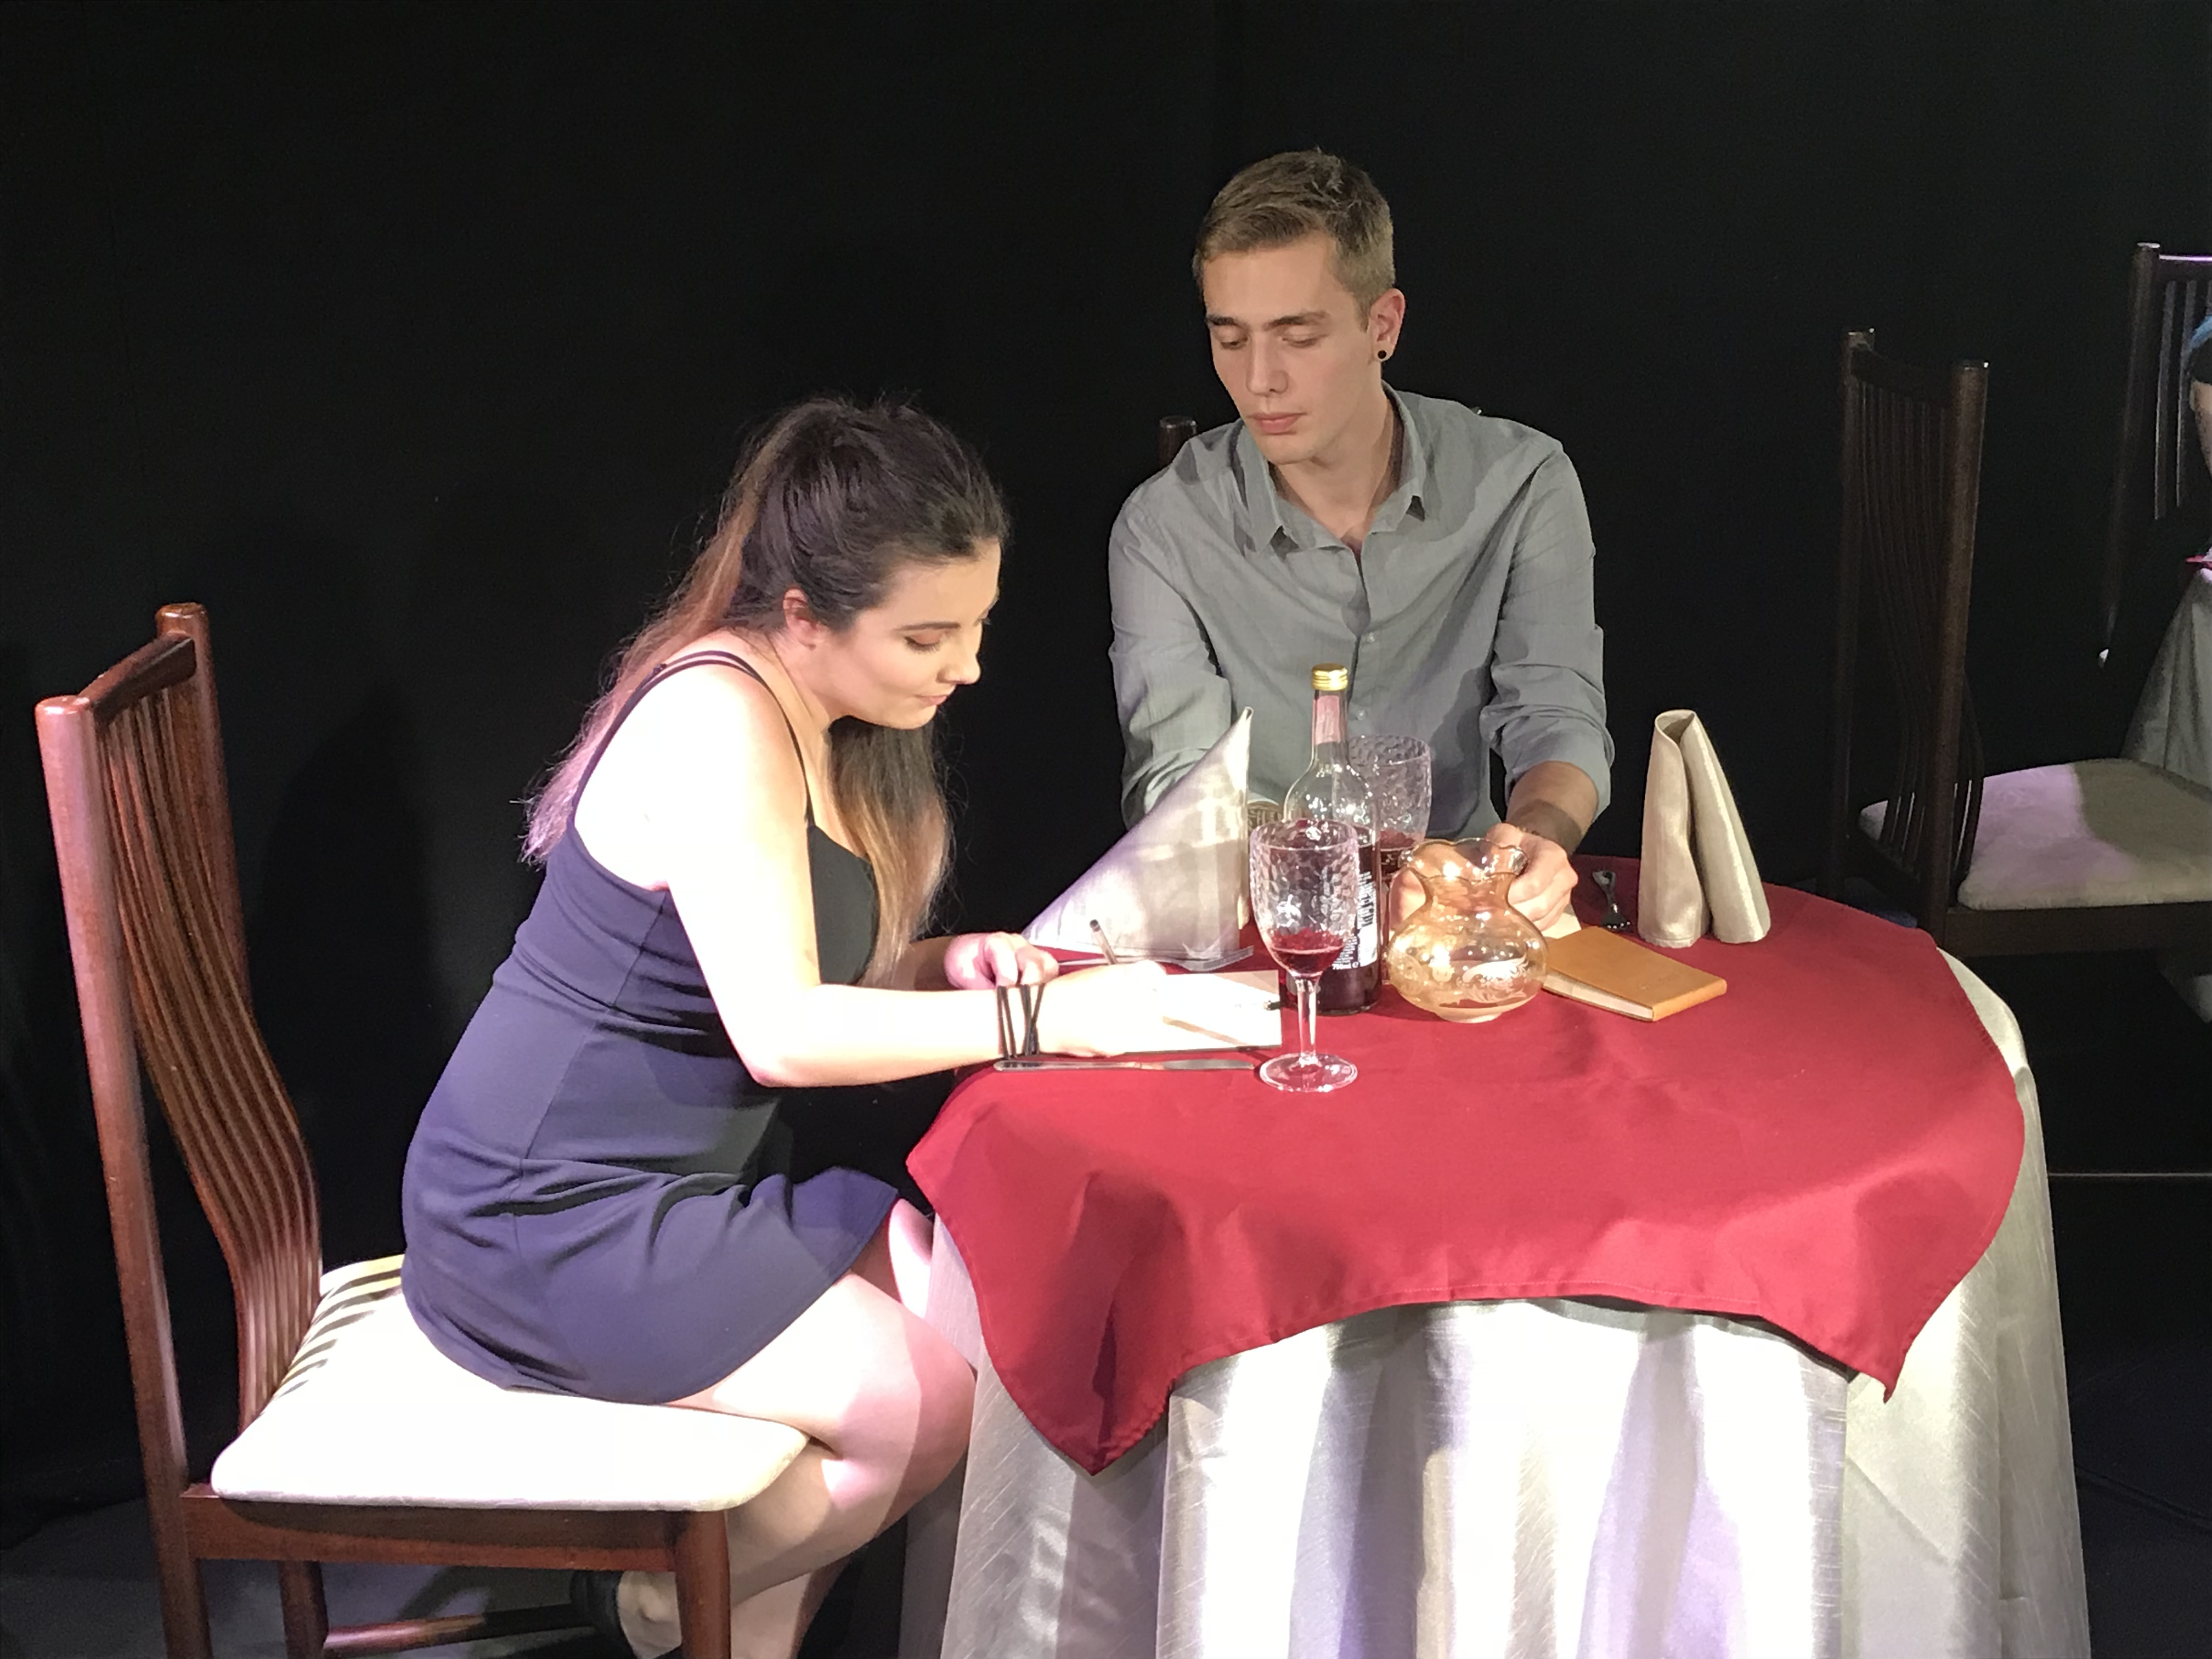 18_08 First Dates 5